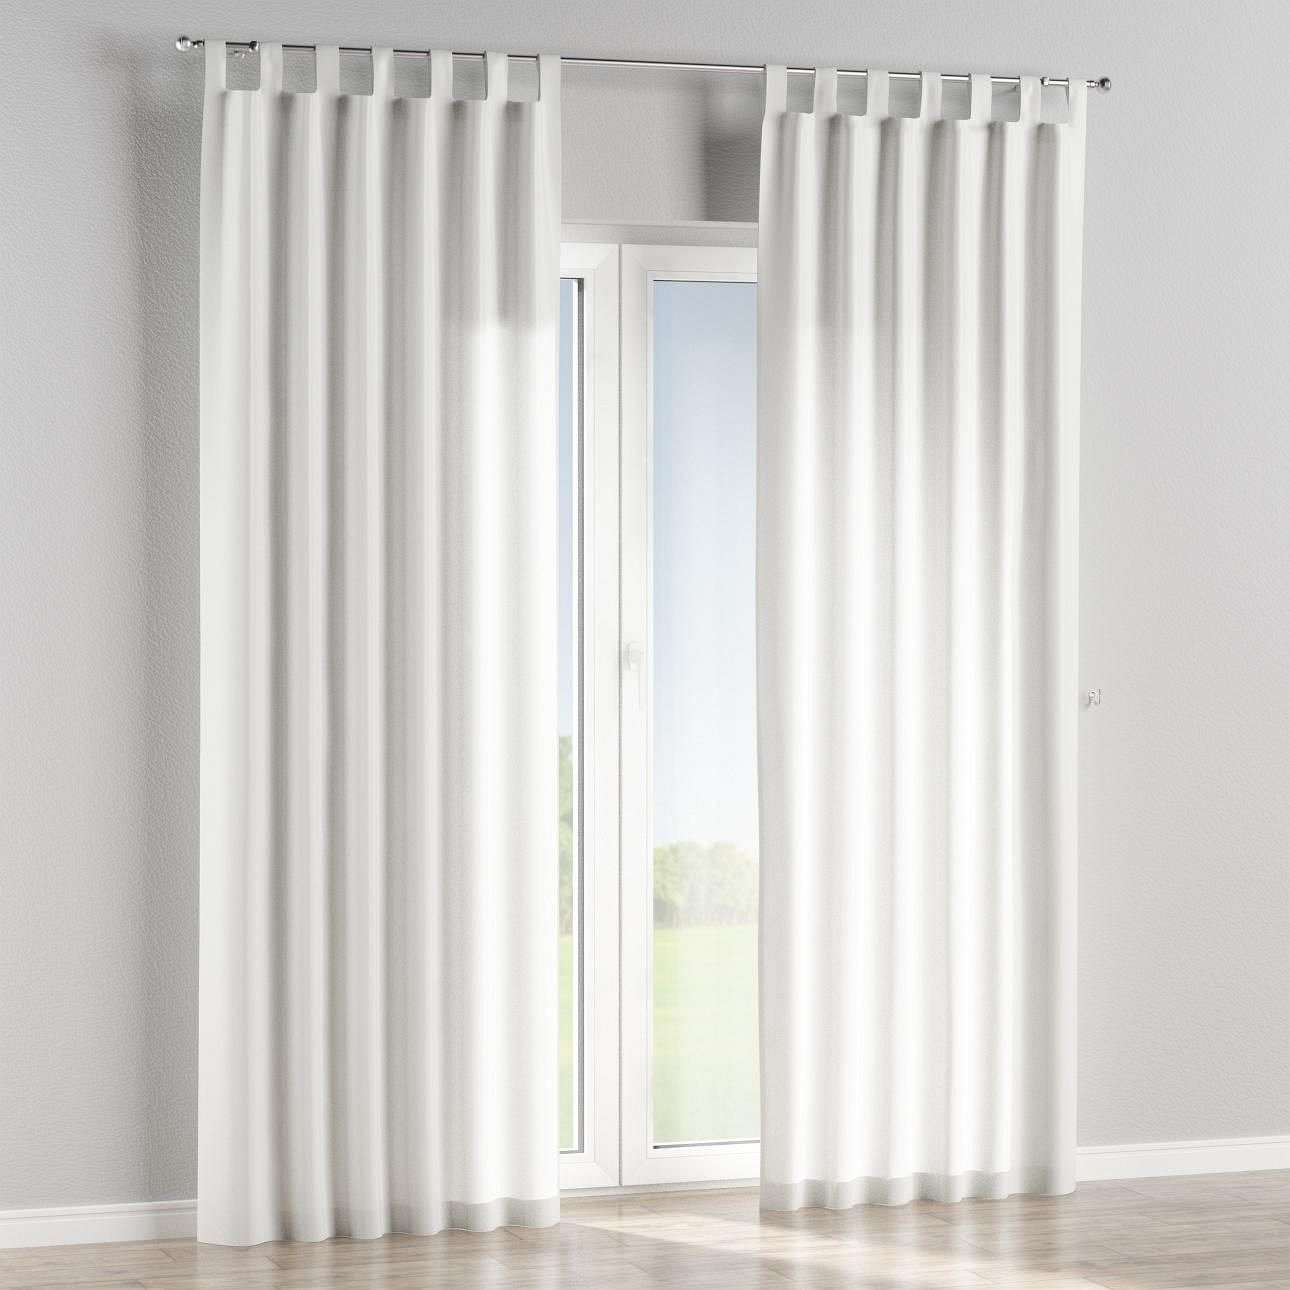 Tab top lined curtains in collection Flowers, fabric: 140-90